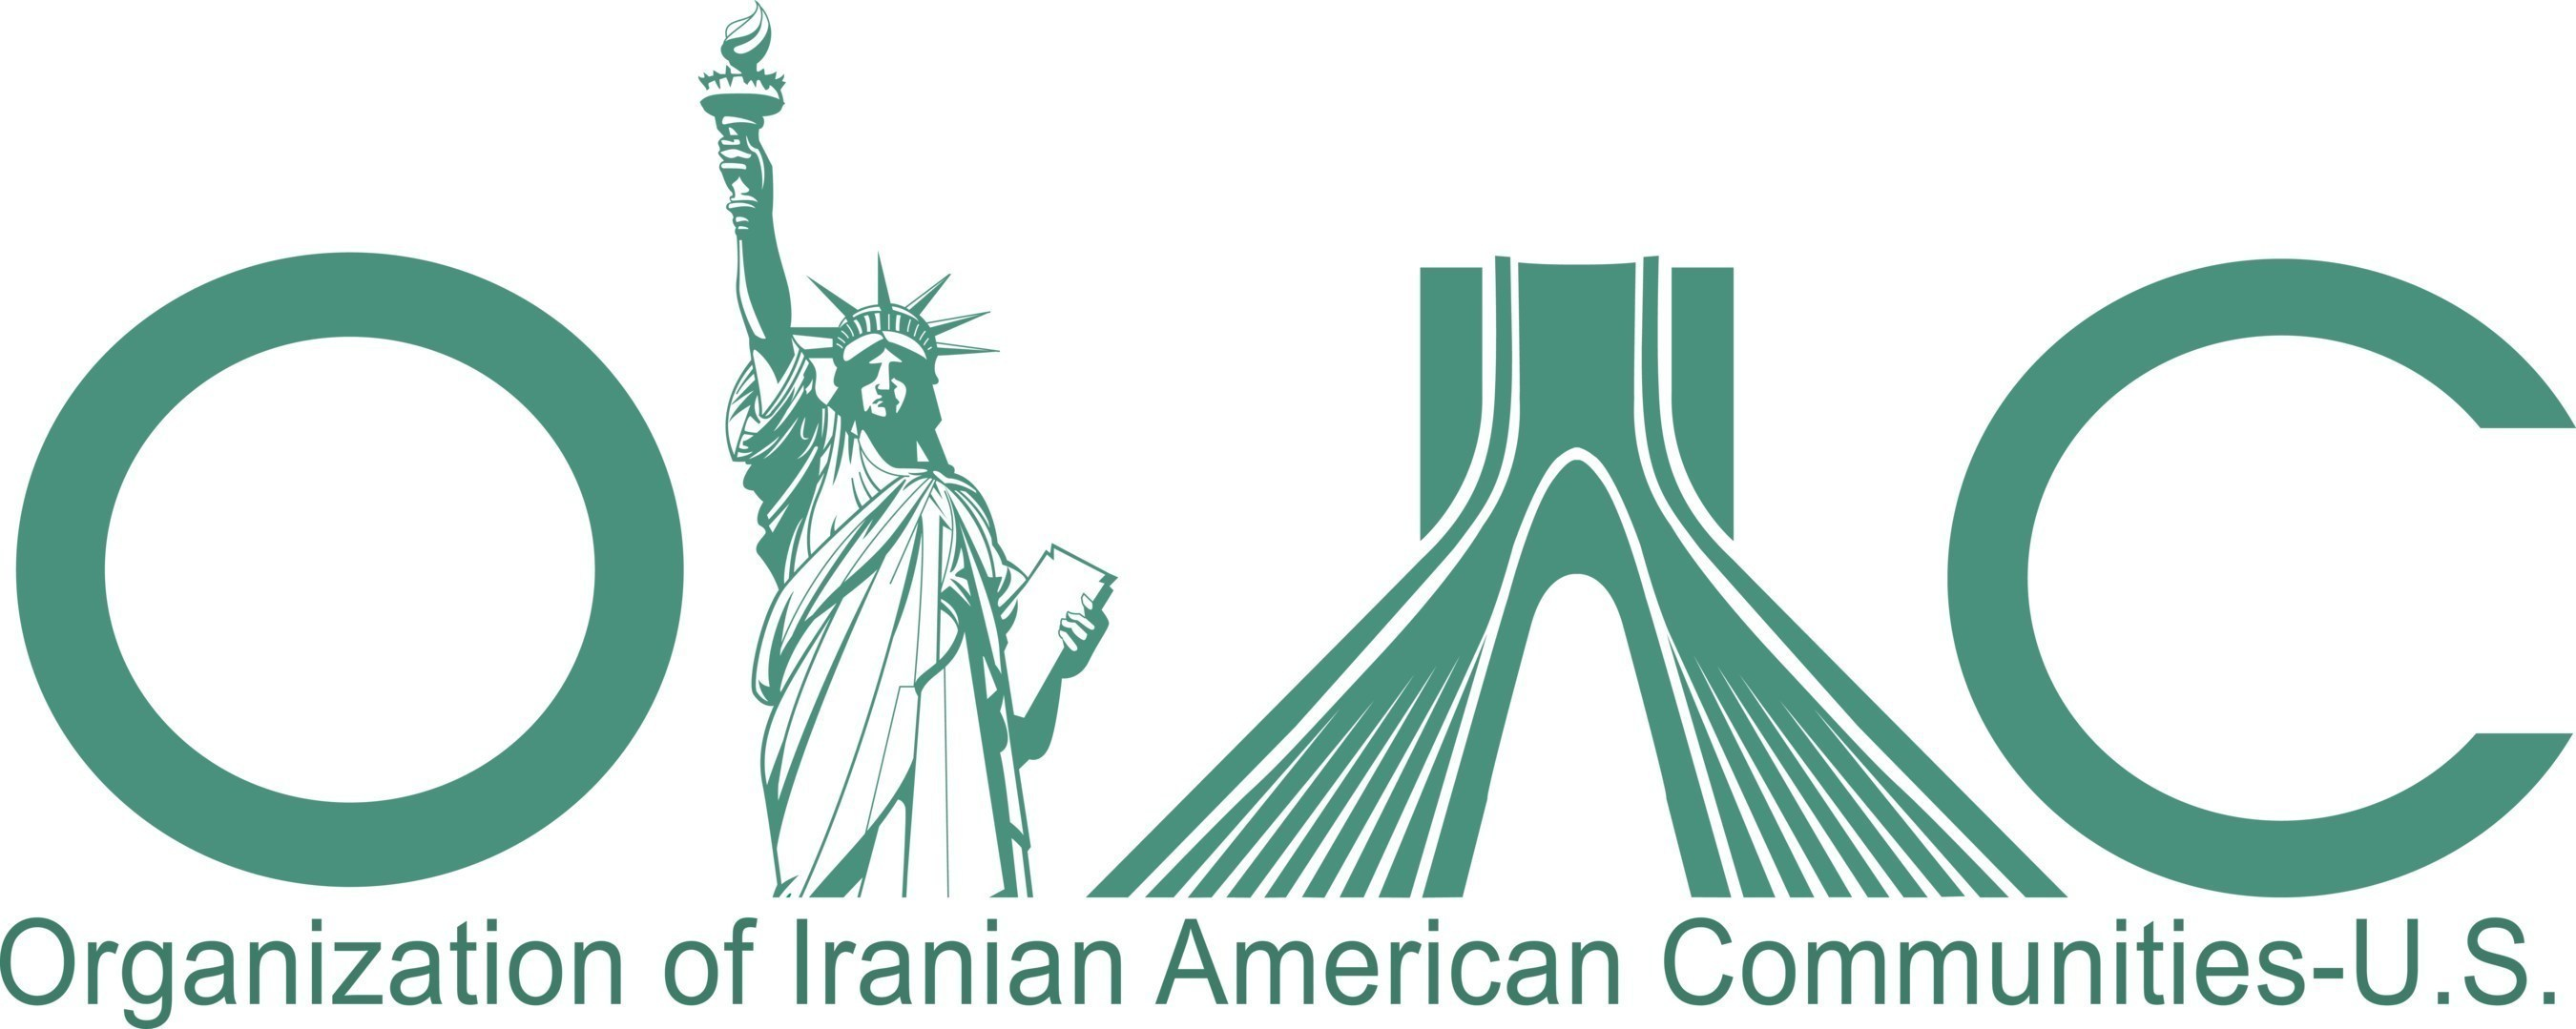 Organization of Iranian American Communities - U.S. (OIACUS)